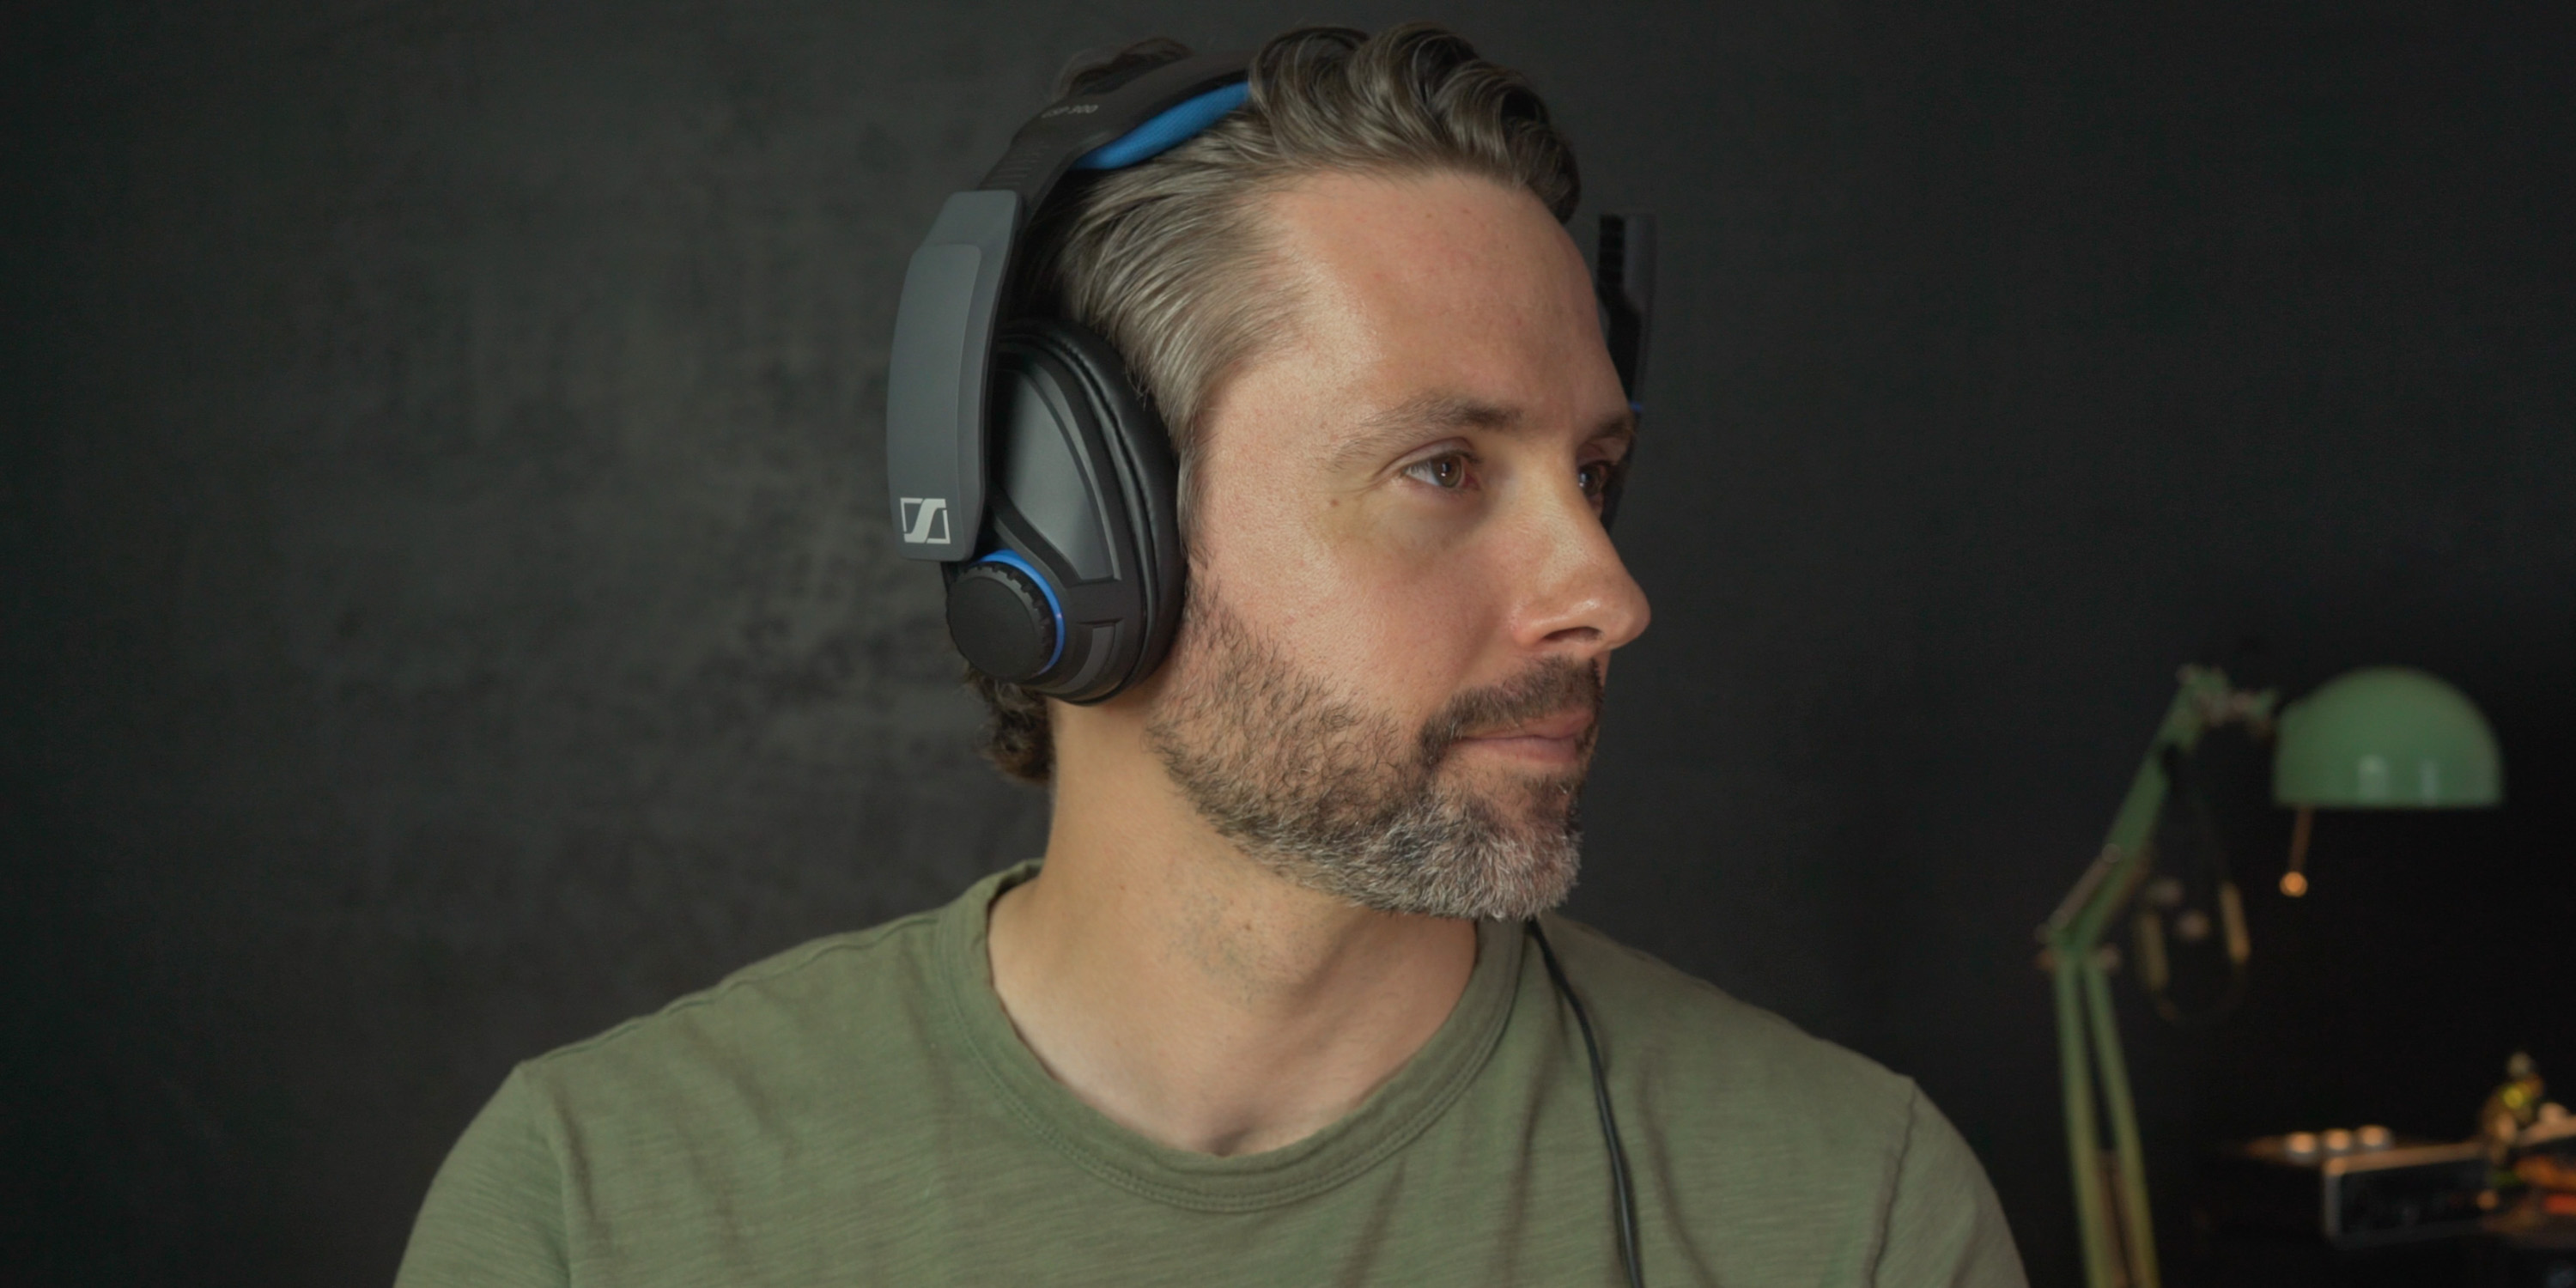 Wearing the GSP 300 gaming headset